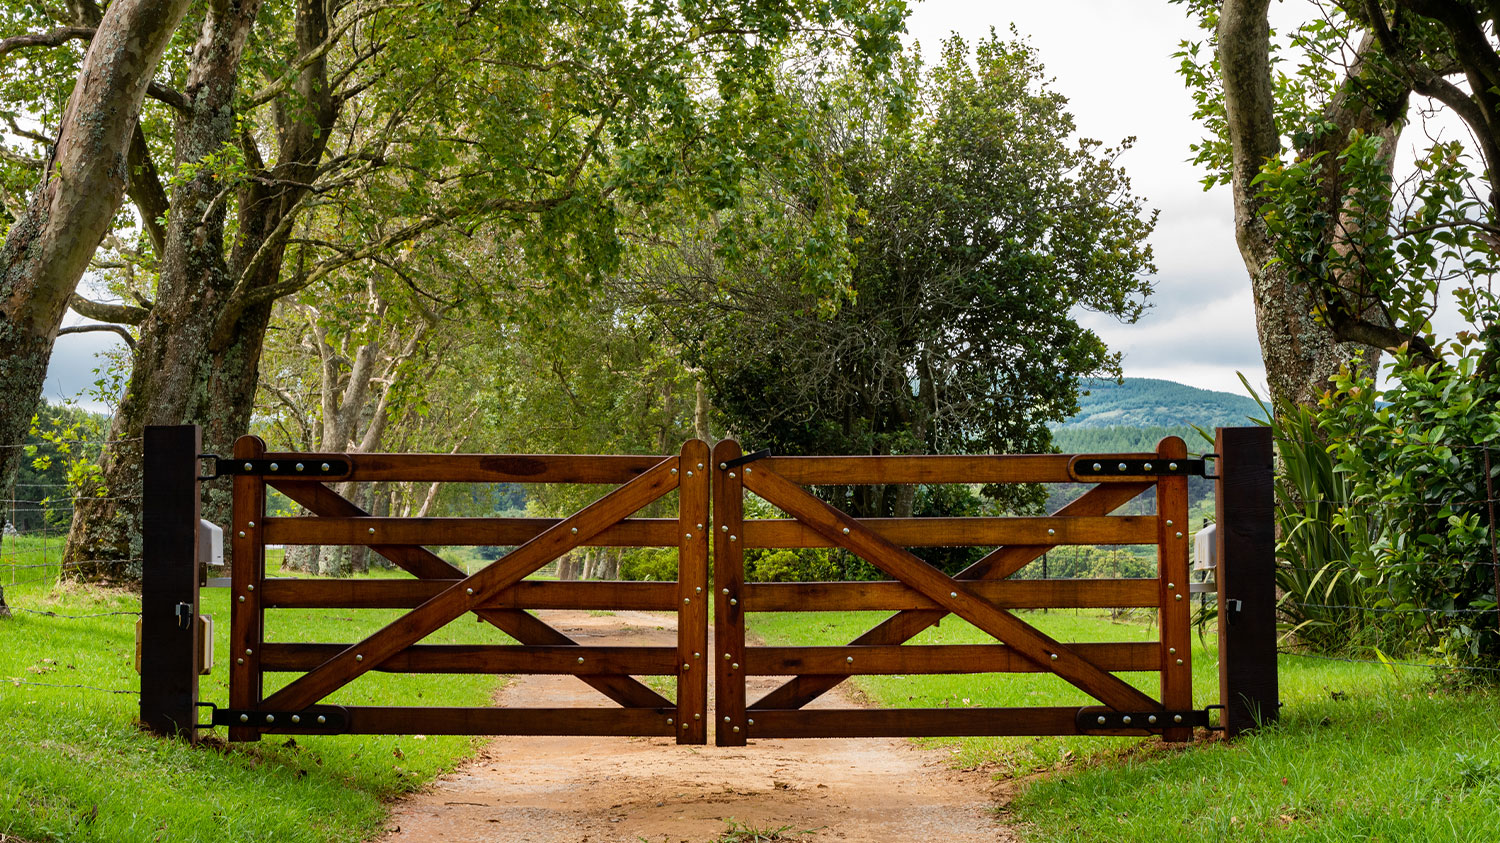 Wooden Gate Entrance to a Farm